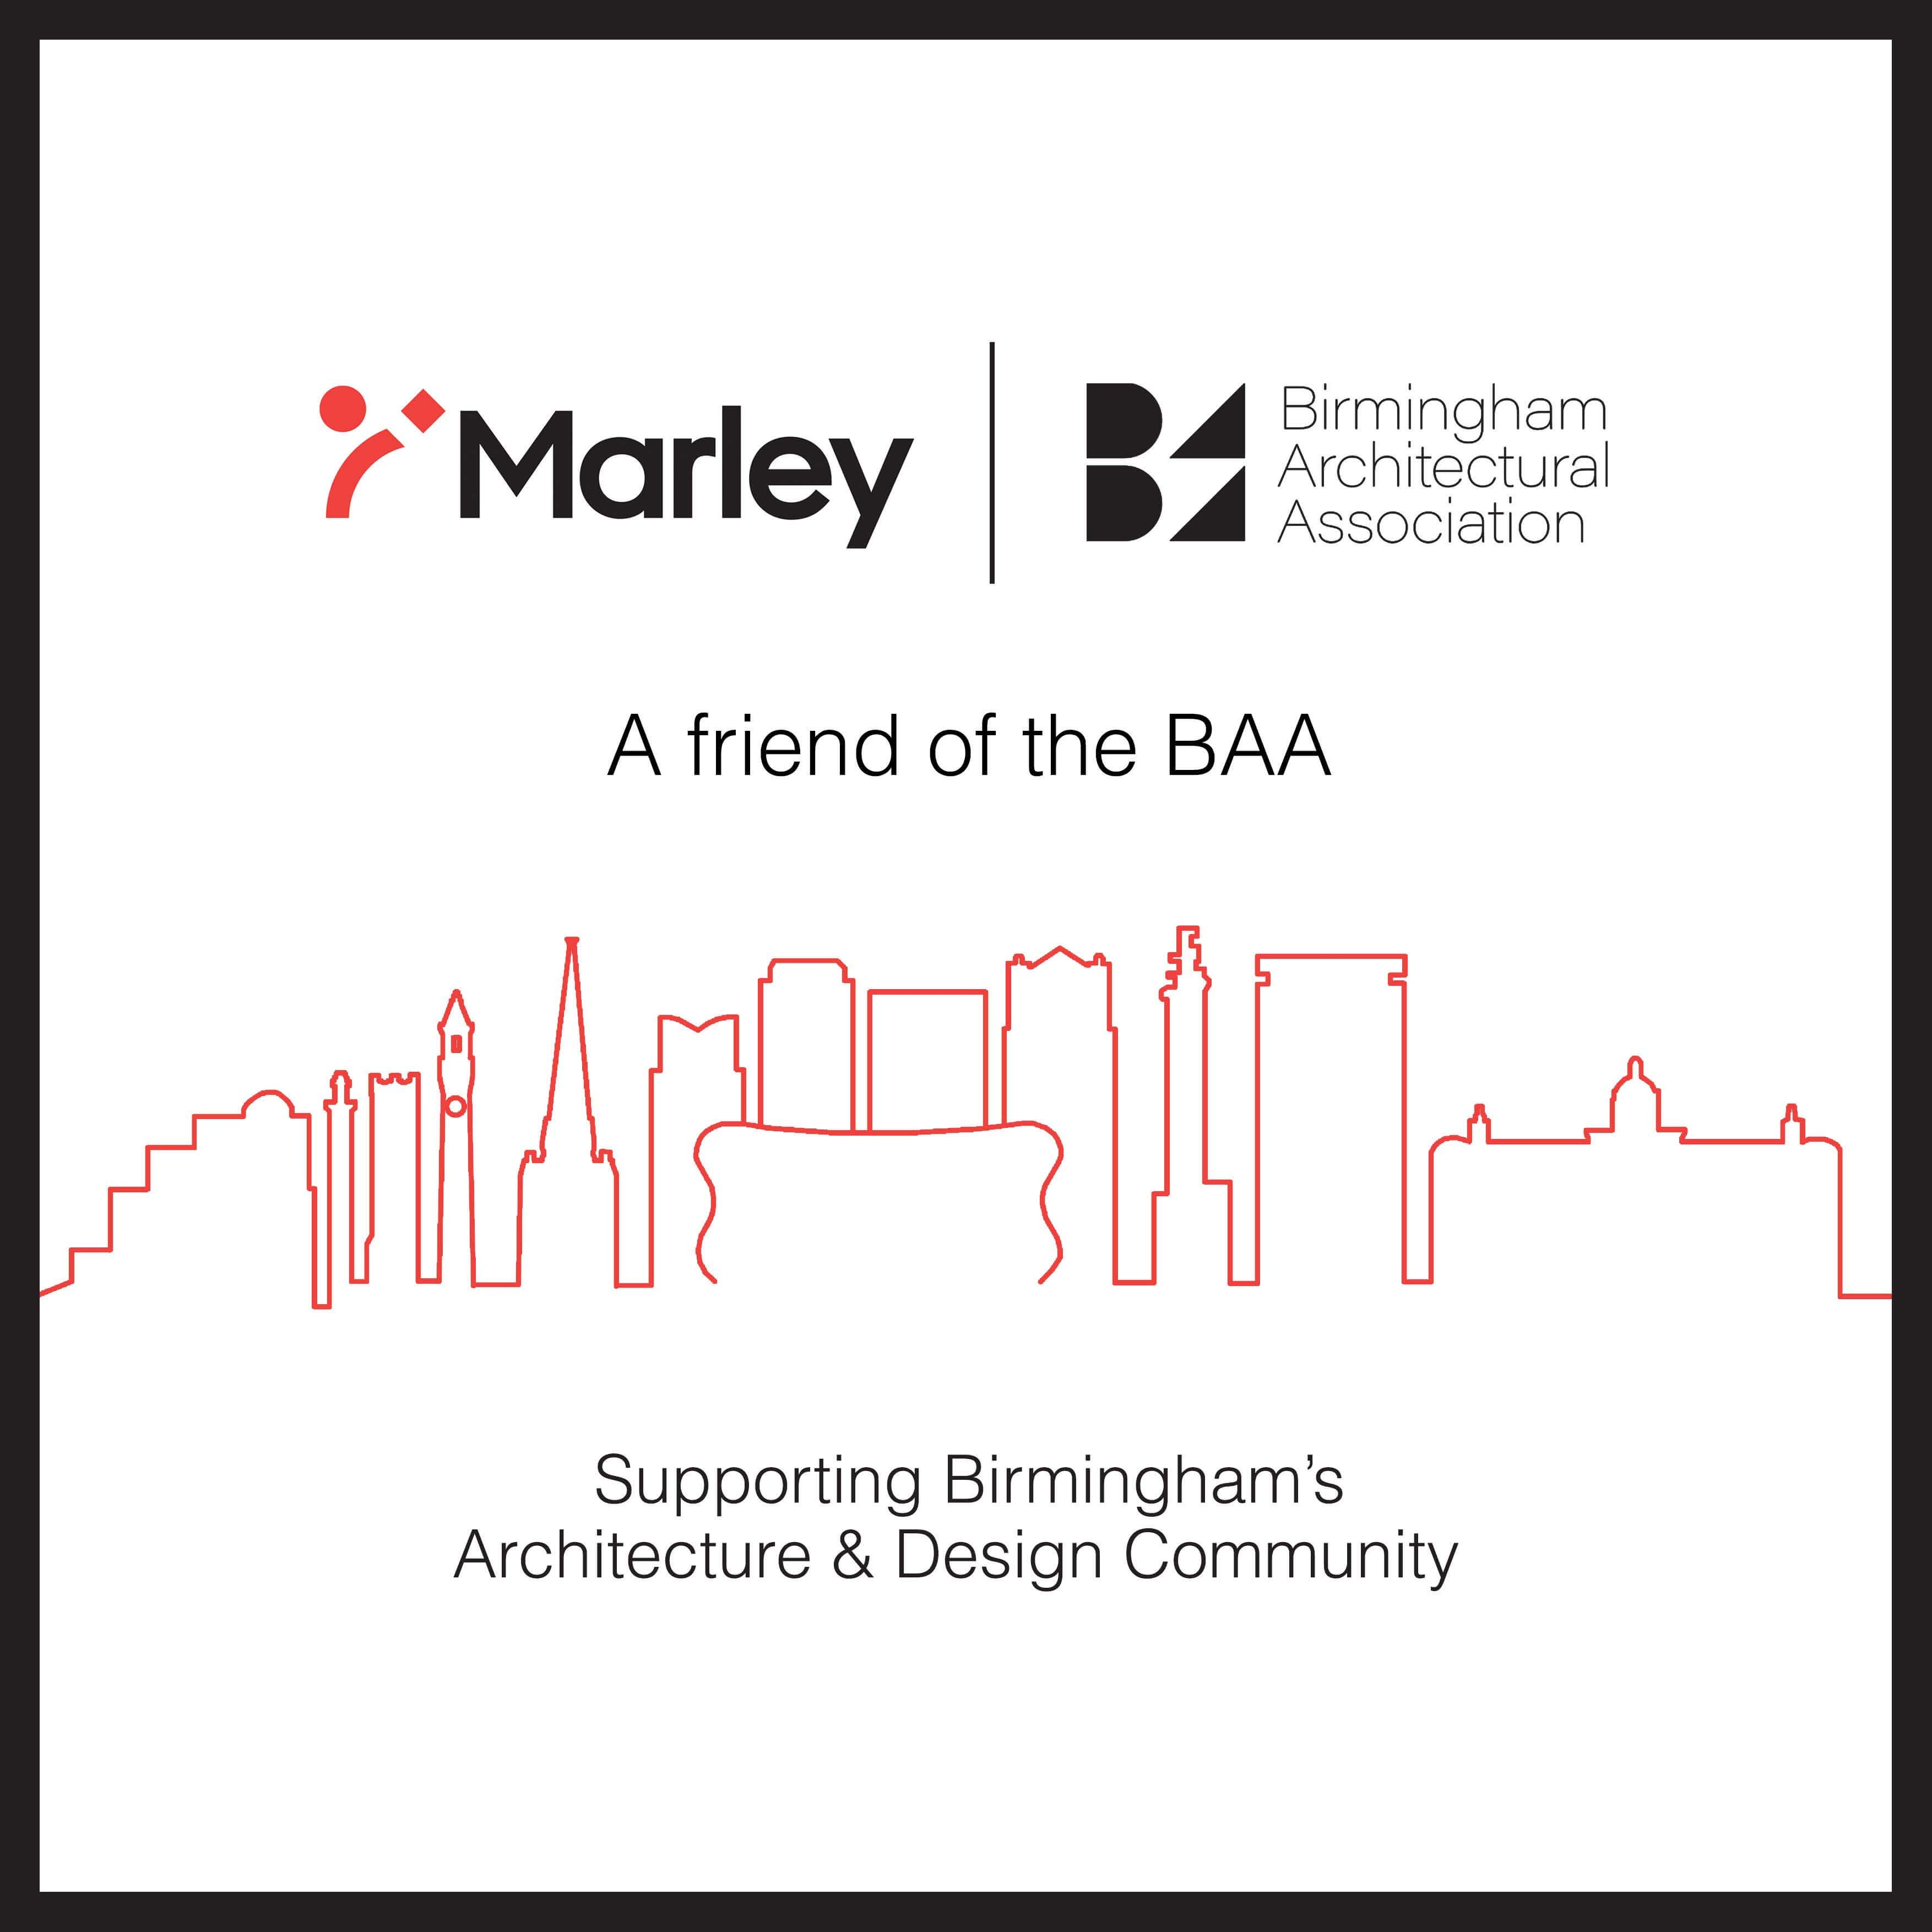 birmingham architectural association and marley partnership logo